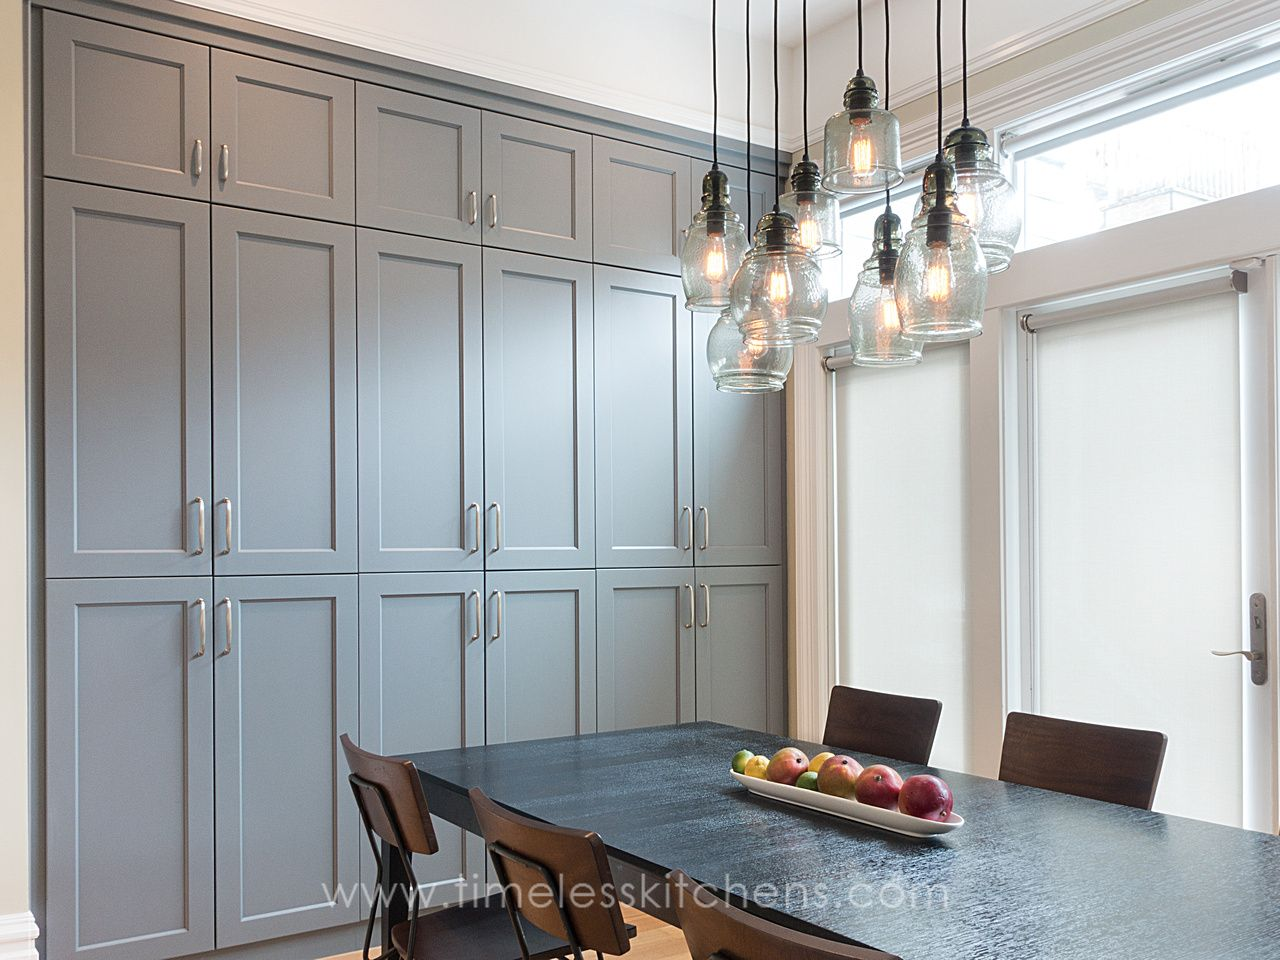 Pin by Stacie Velten Remy on Cabinetry Design | Pinterest